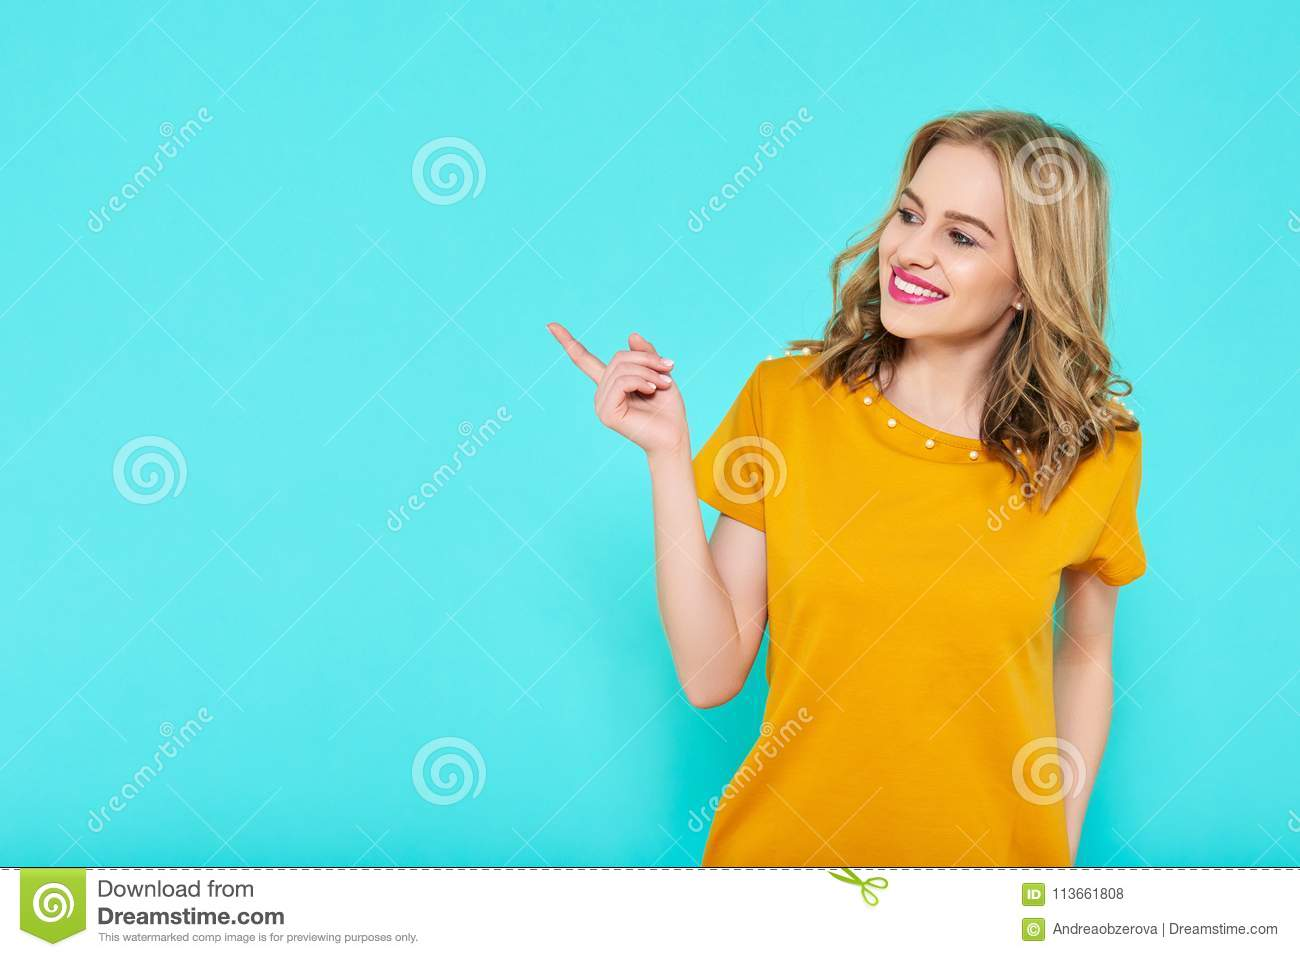 Trendy attractive young woman wearing mustard color summer dress posing over pastel blue background. Front view of smiling woman.